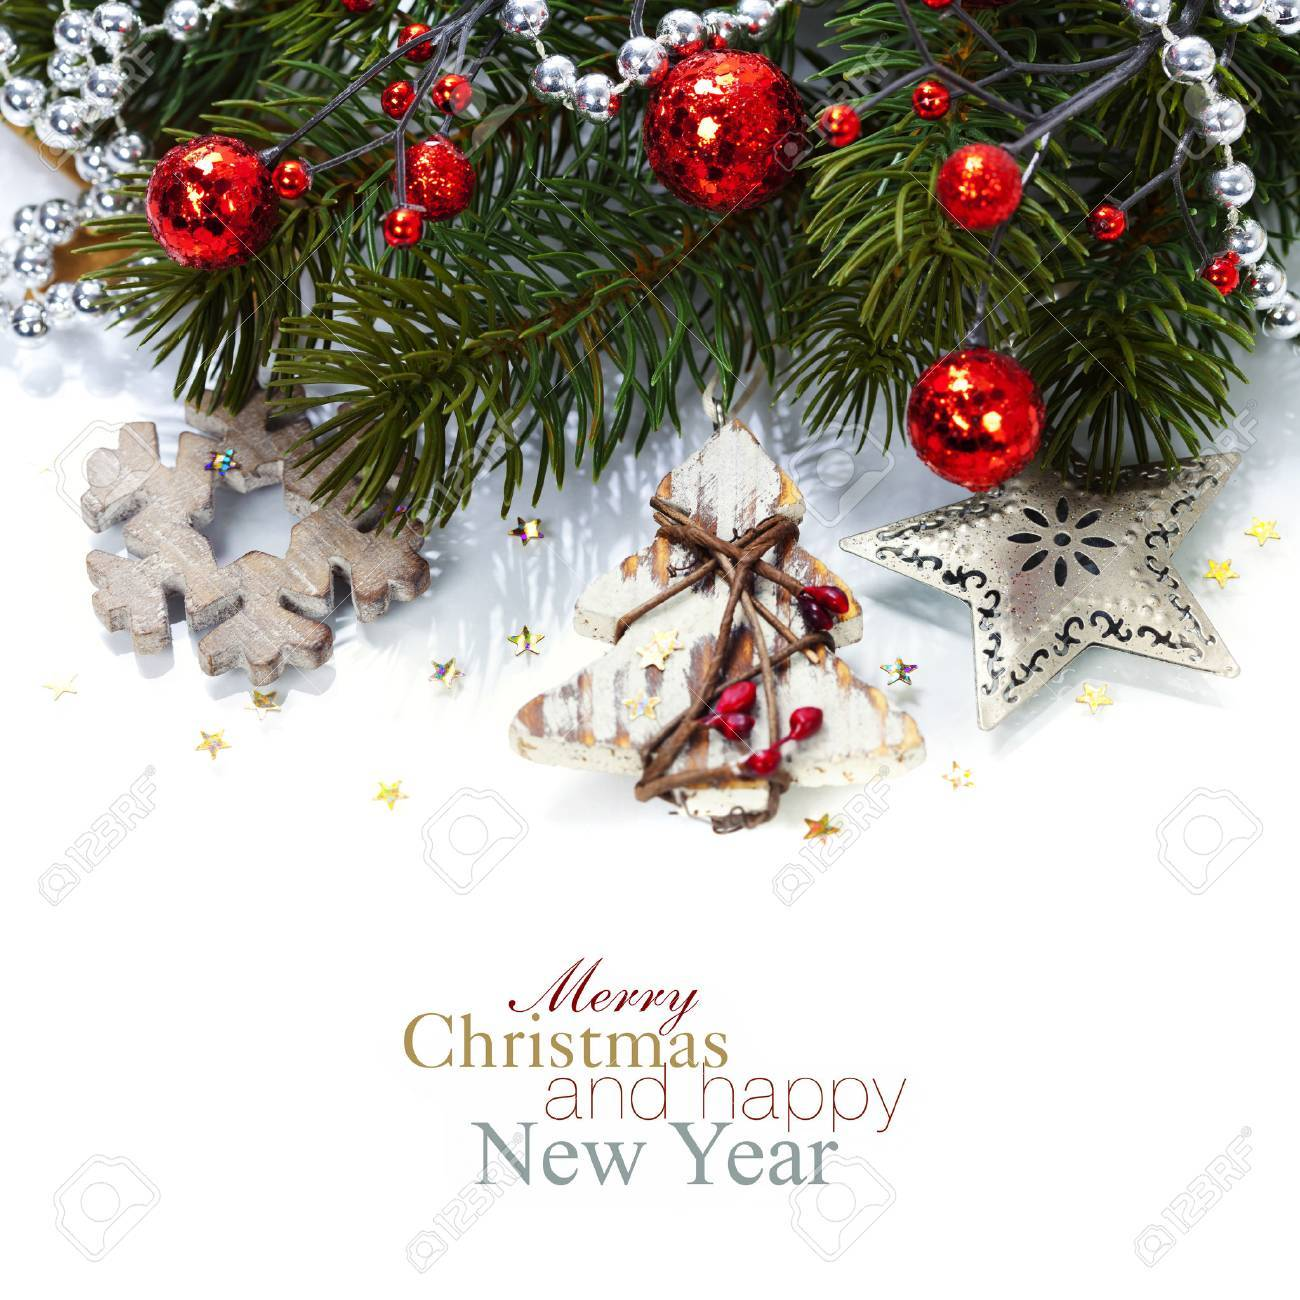 Bright christmas composition with wooden decorations (with easy removable sample text) Stock Photo - 22955665